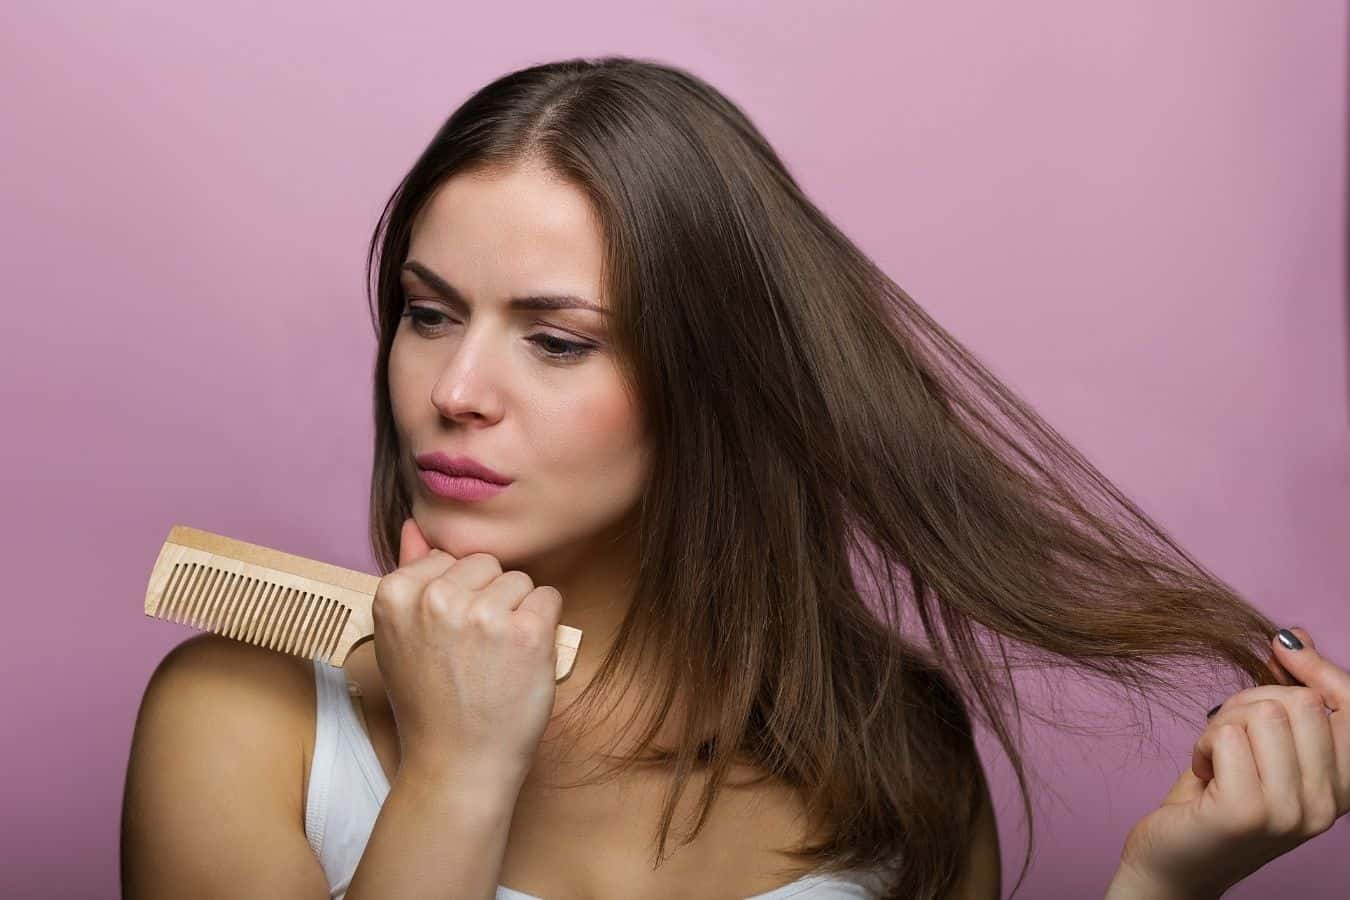 does obesity cause hair loss